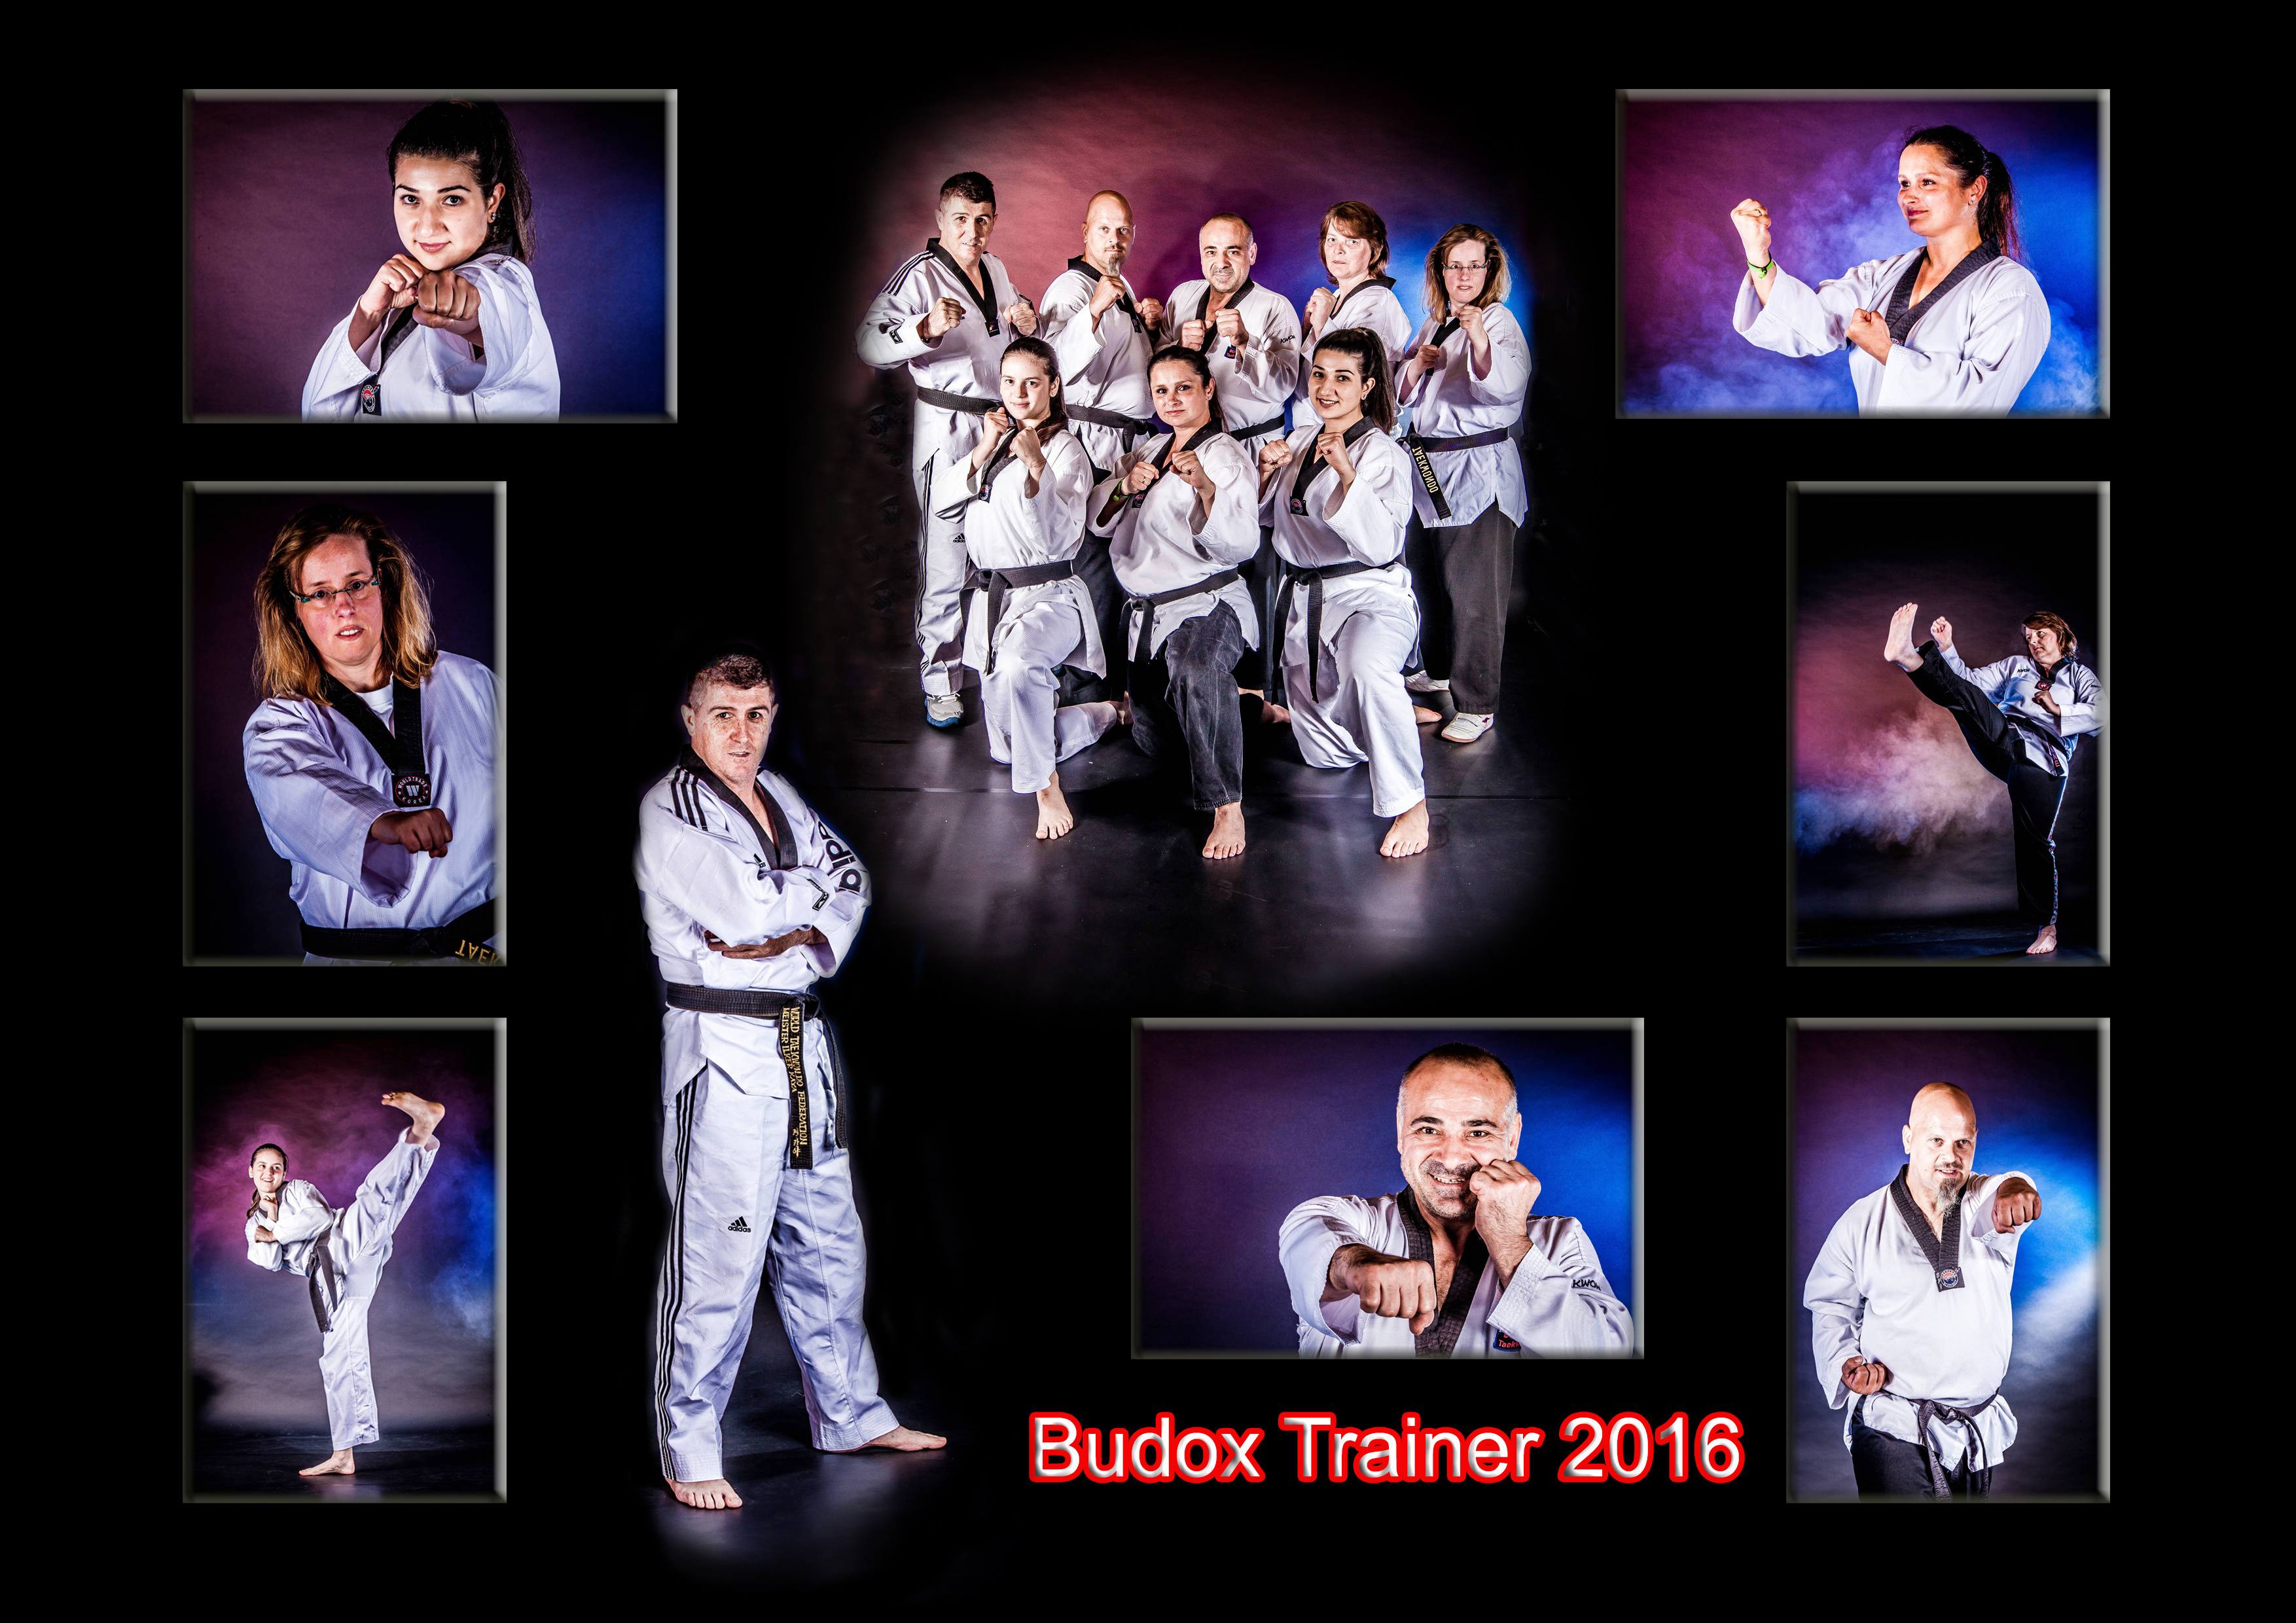 Budox Trainer-Collage